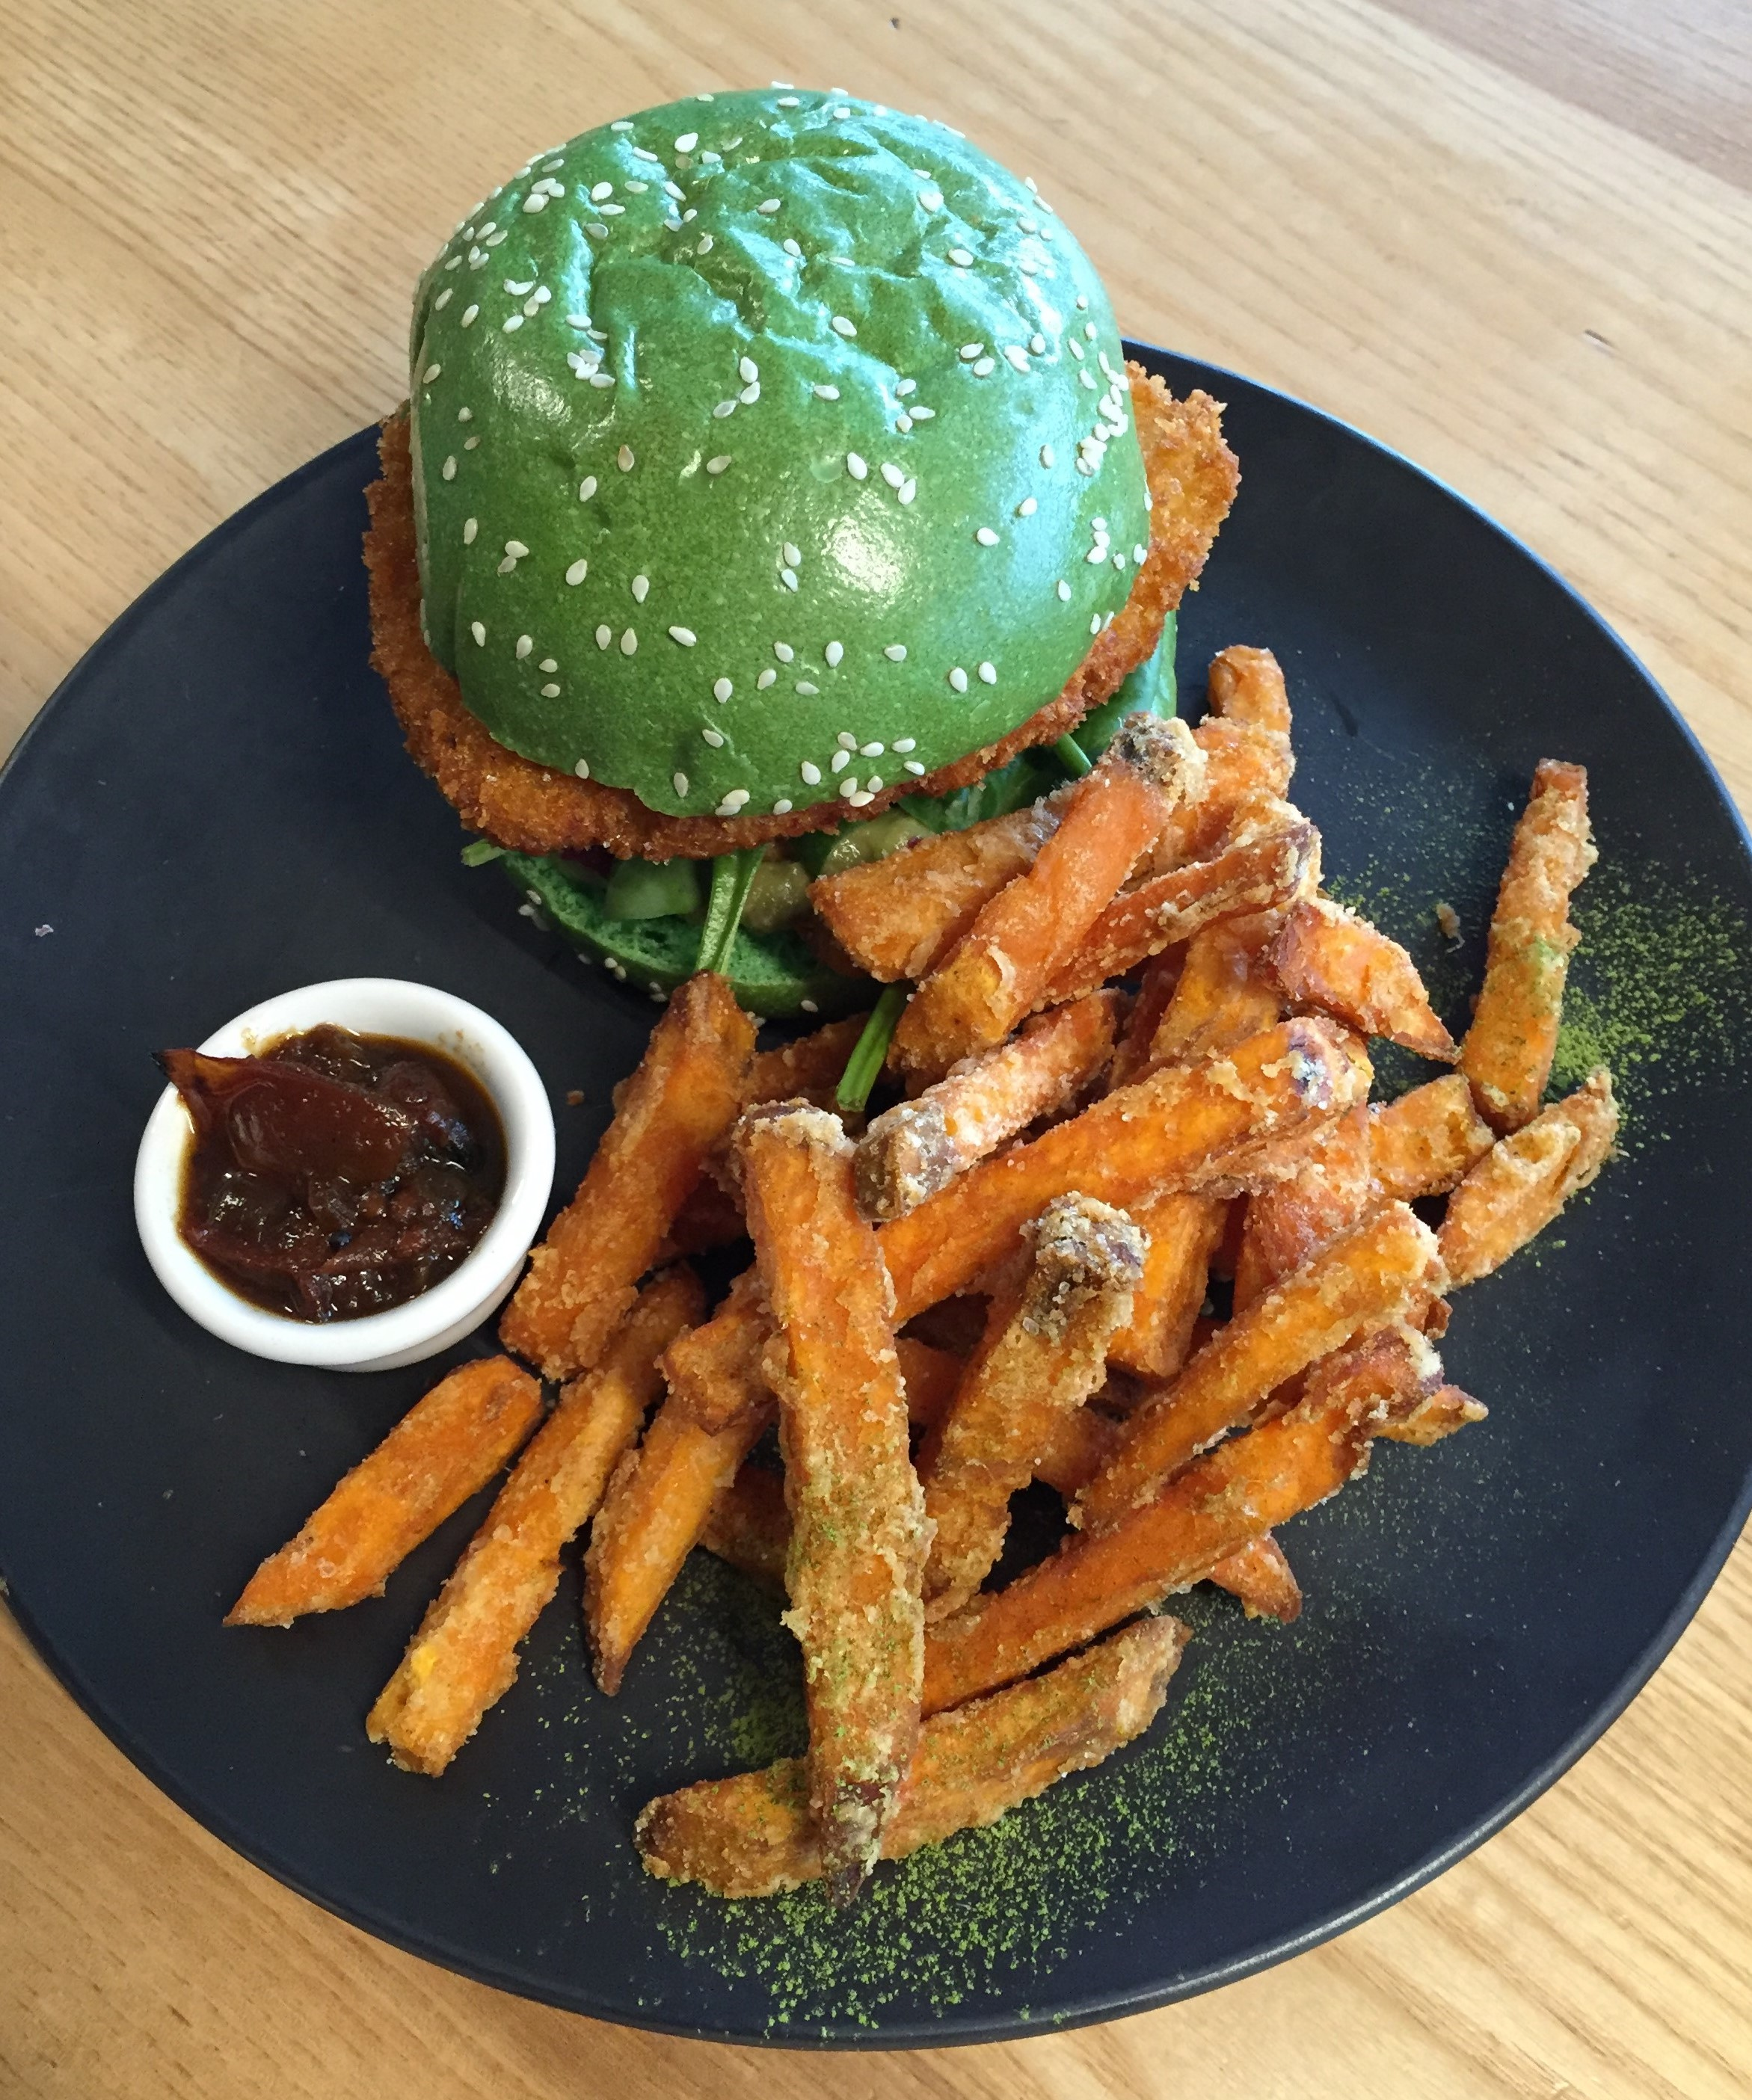 Green vegan burger and sweet potato fries at Matcha Mylkbar, Melbourne.